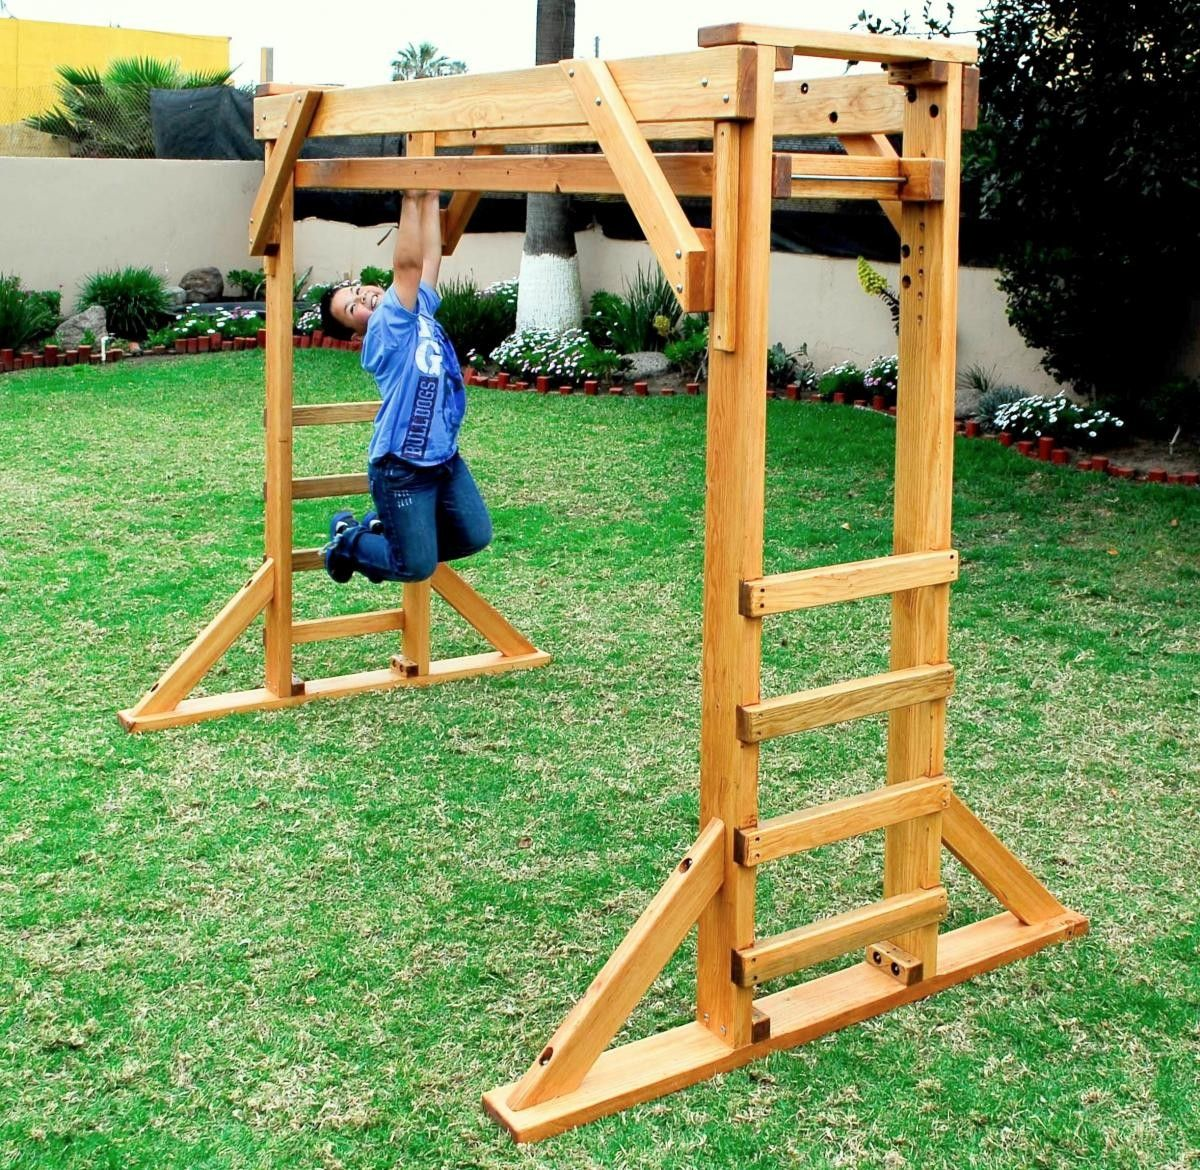 Sheldon S Monkey Bar Set Forever Redwood Diy Monkey Bars